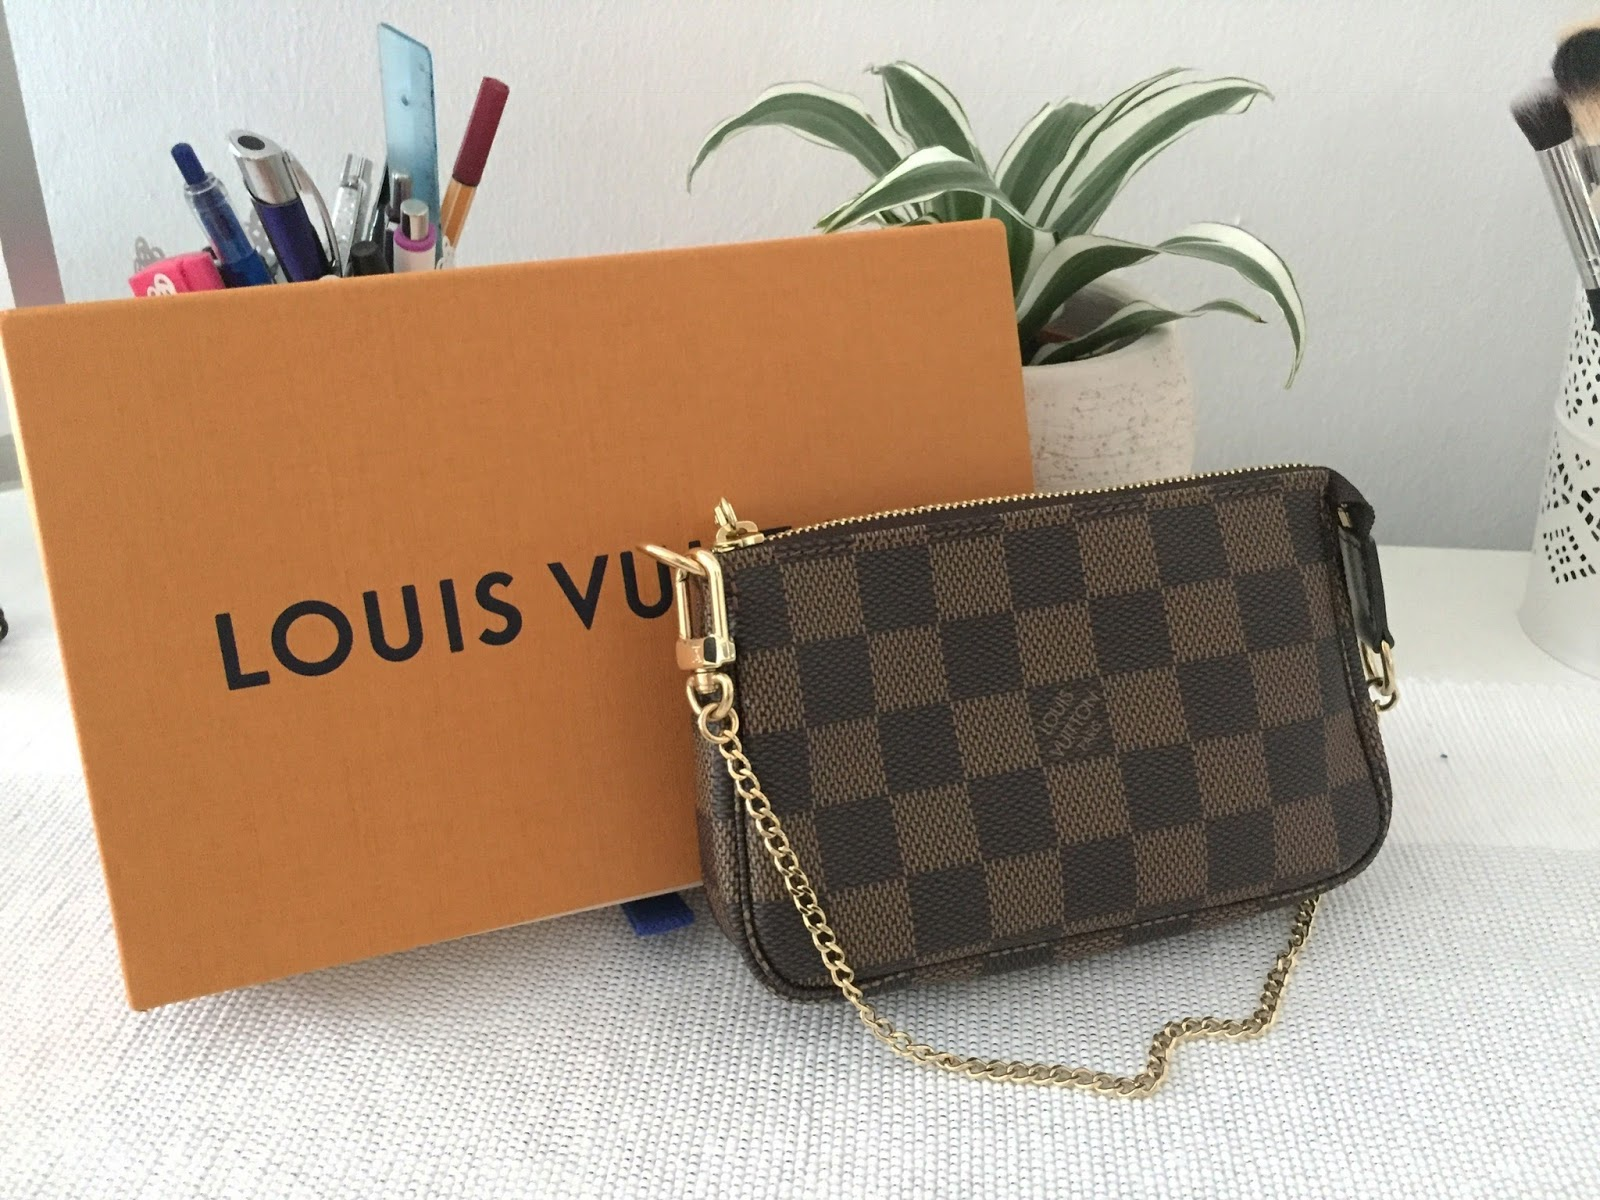 f7caf04eda27 Louis Vuitton Mini Pochette    What Fits Inside  - The Beauty Novel ...